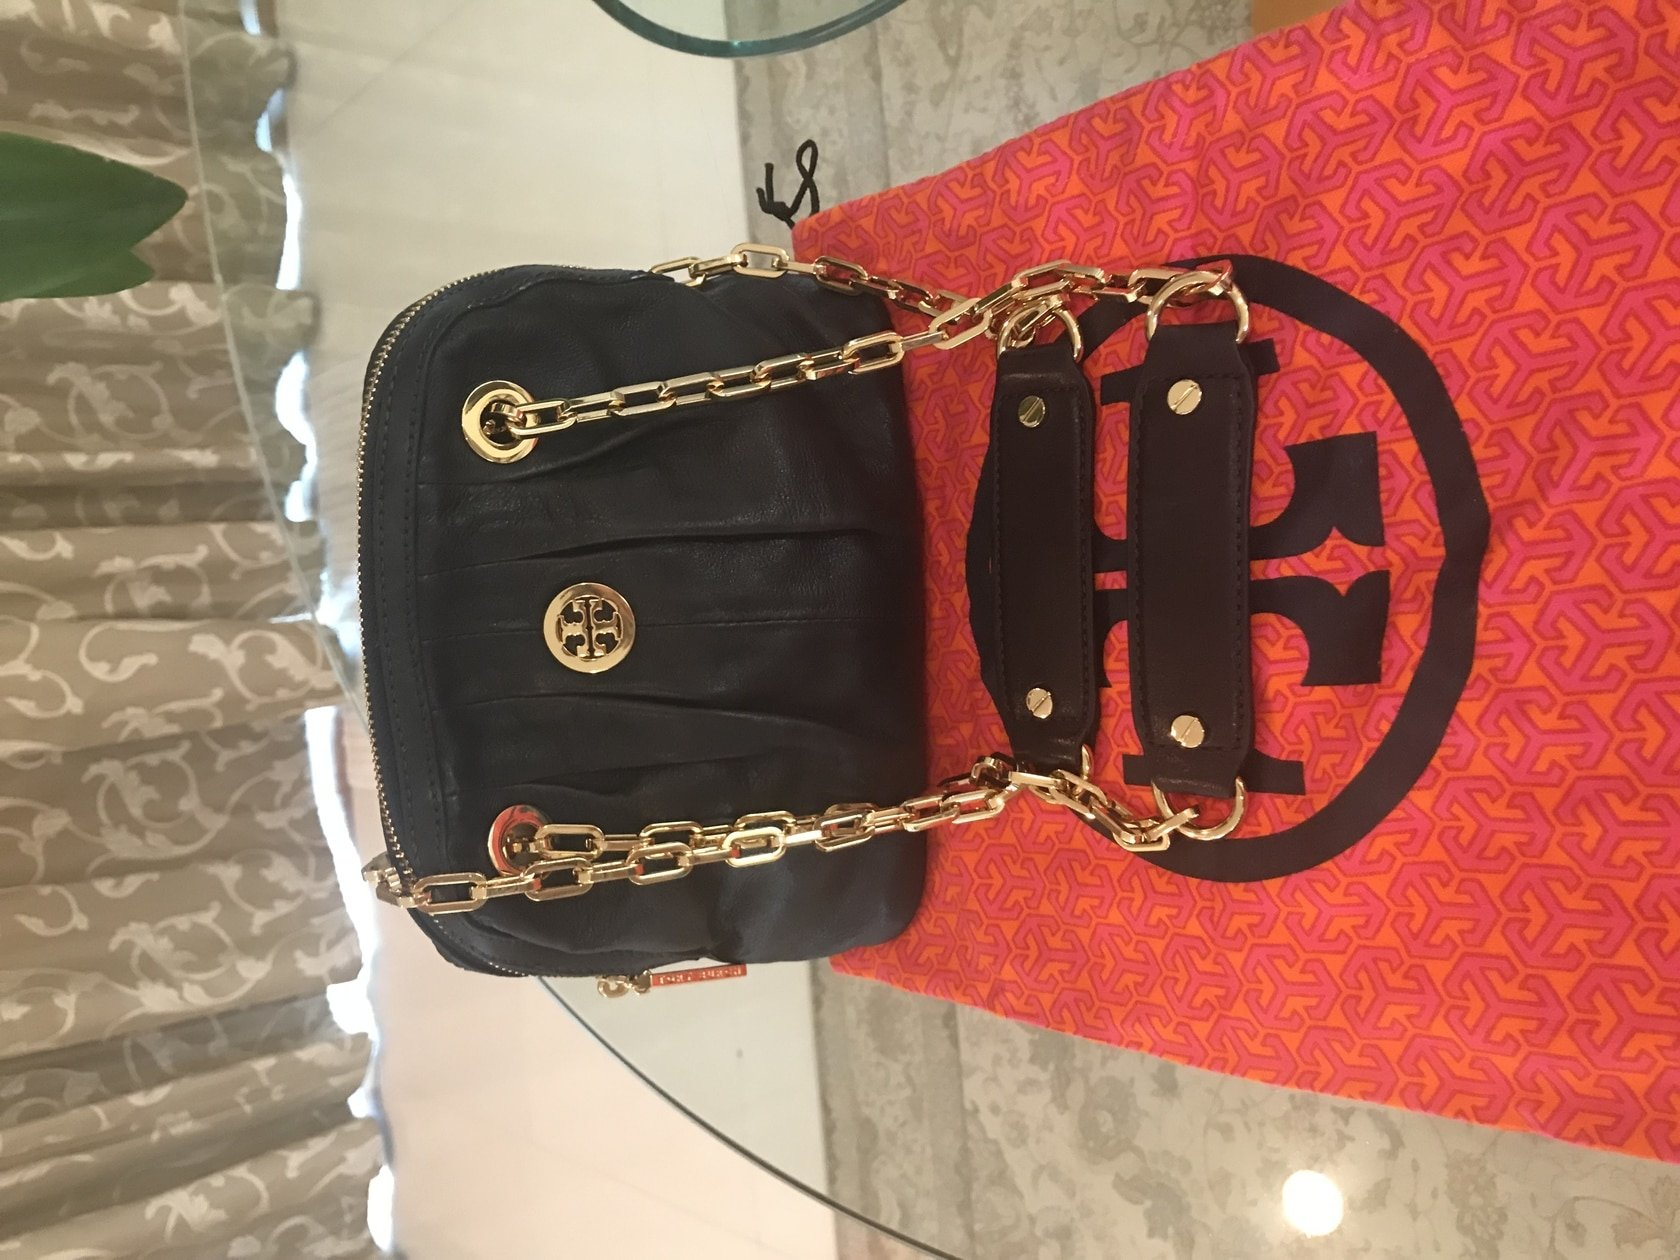 Huge Discount Tory Burch hand bag black leather